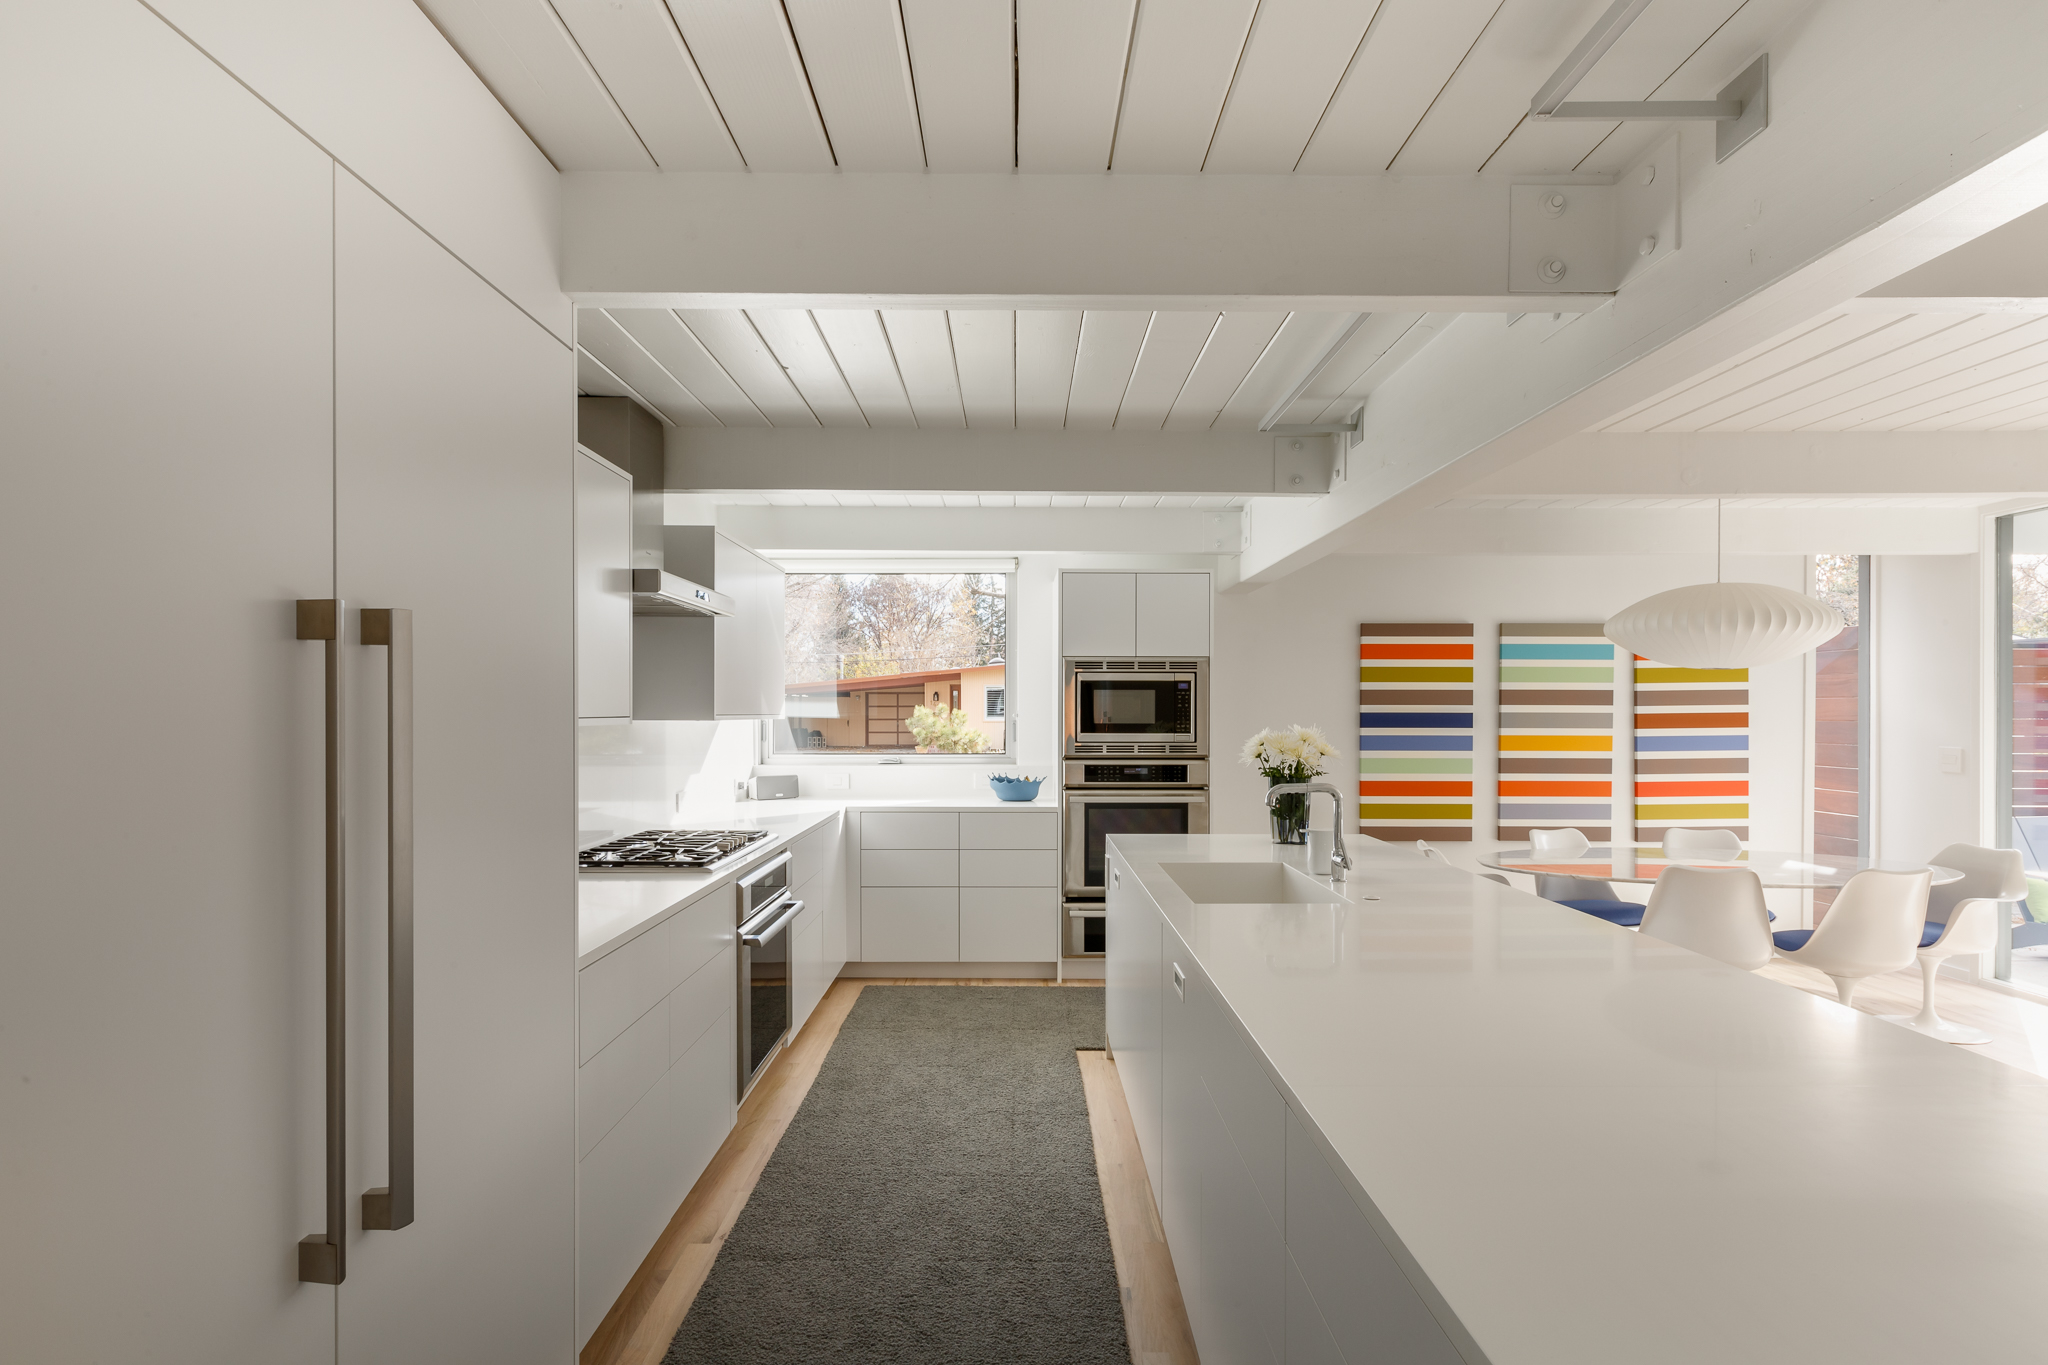 21_French-Meyers-Finished-kitchen-5_2048px_Long.jpg